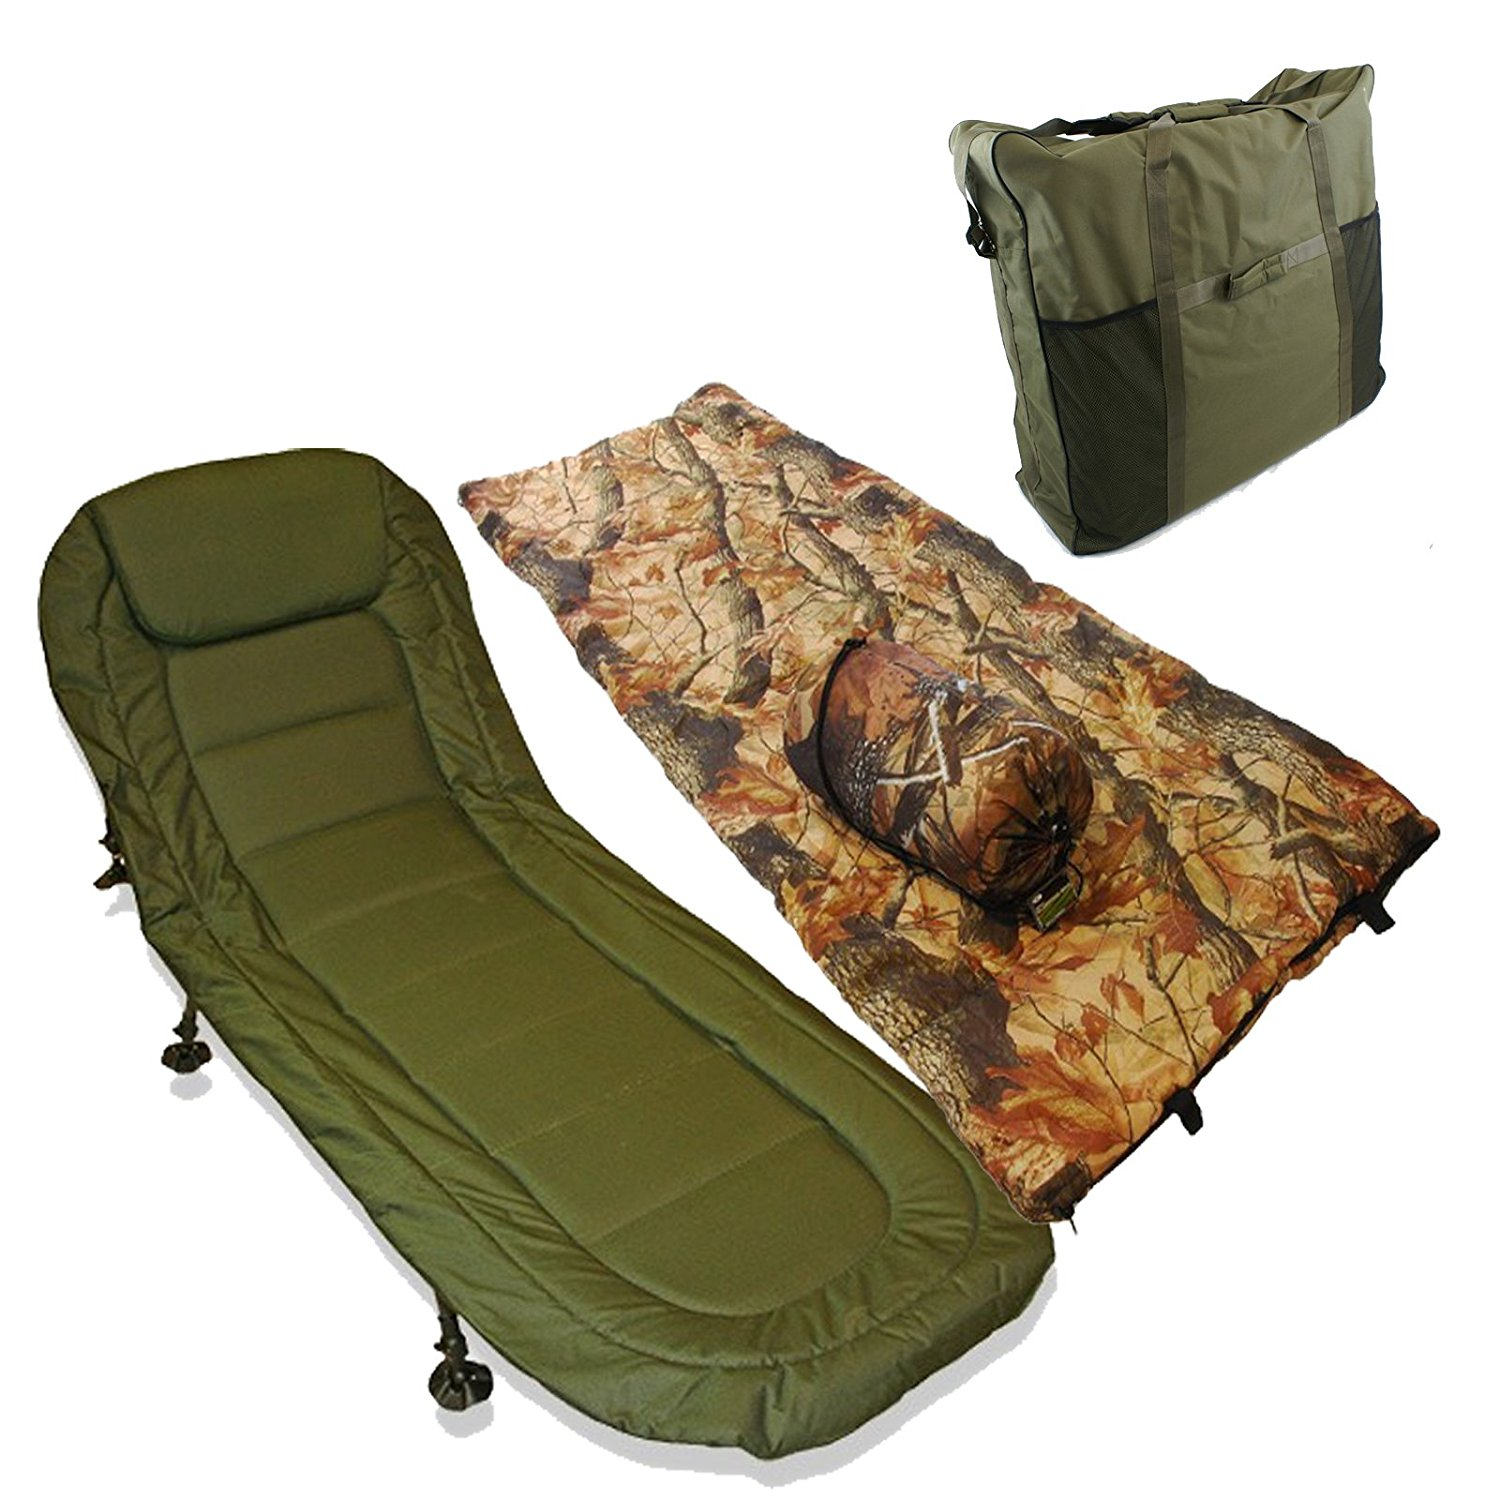 Carp Fishing Bed Chair Bedchair Sleeping Bag Deal Night ...